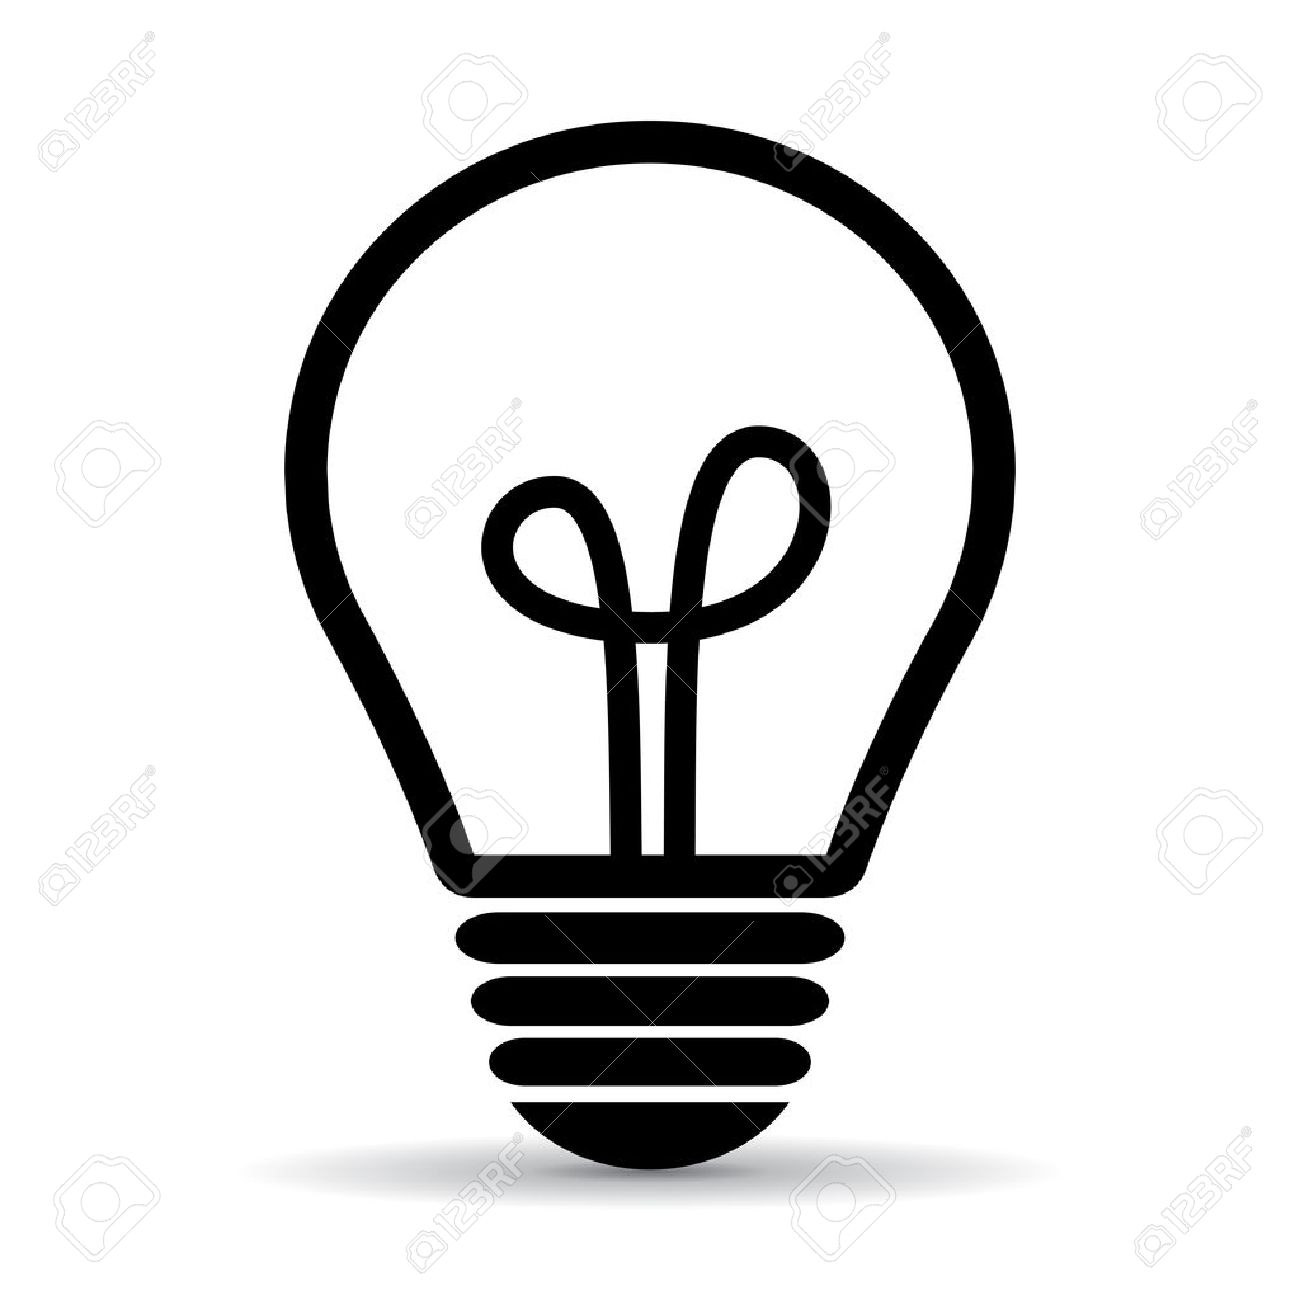 light bulb vector icon royalty free cliparts vectors and stock rh 123rf com light bulb vector drawing light bulb vector